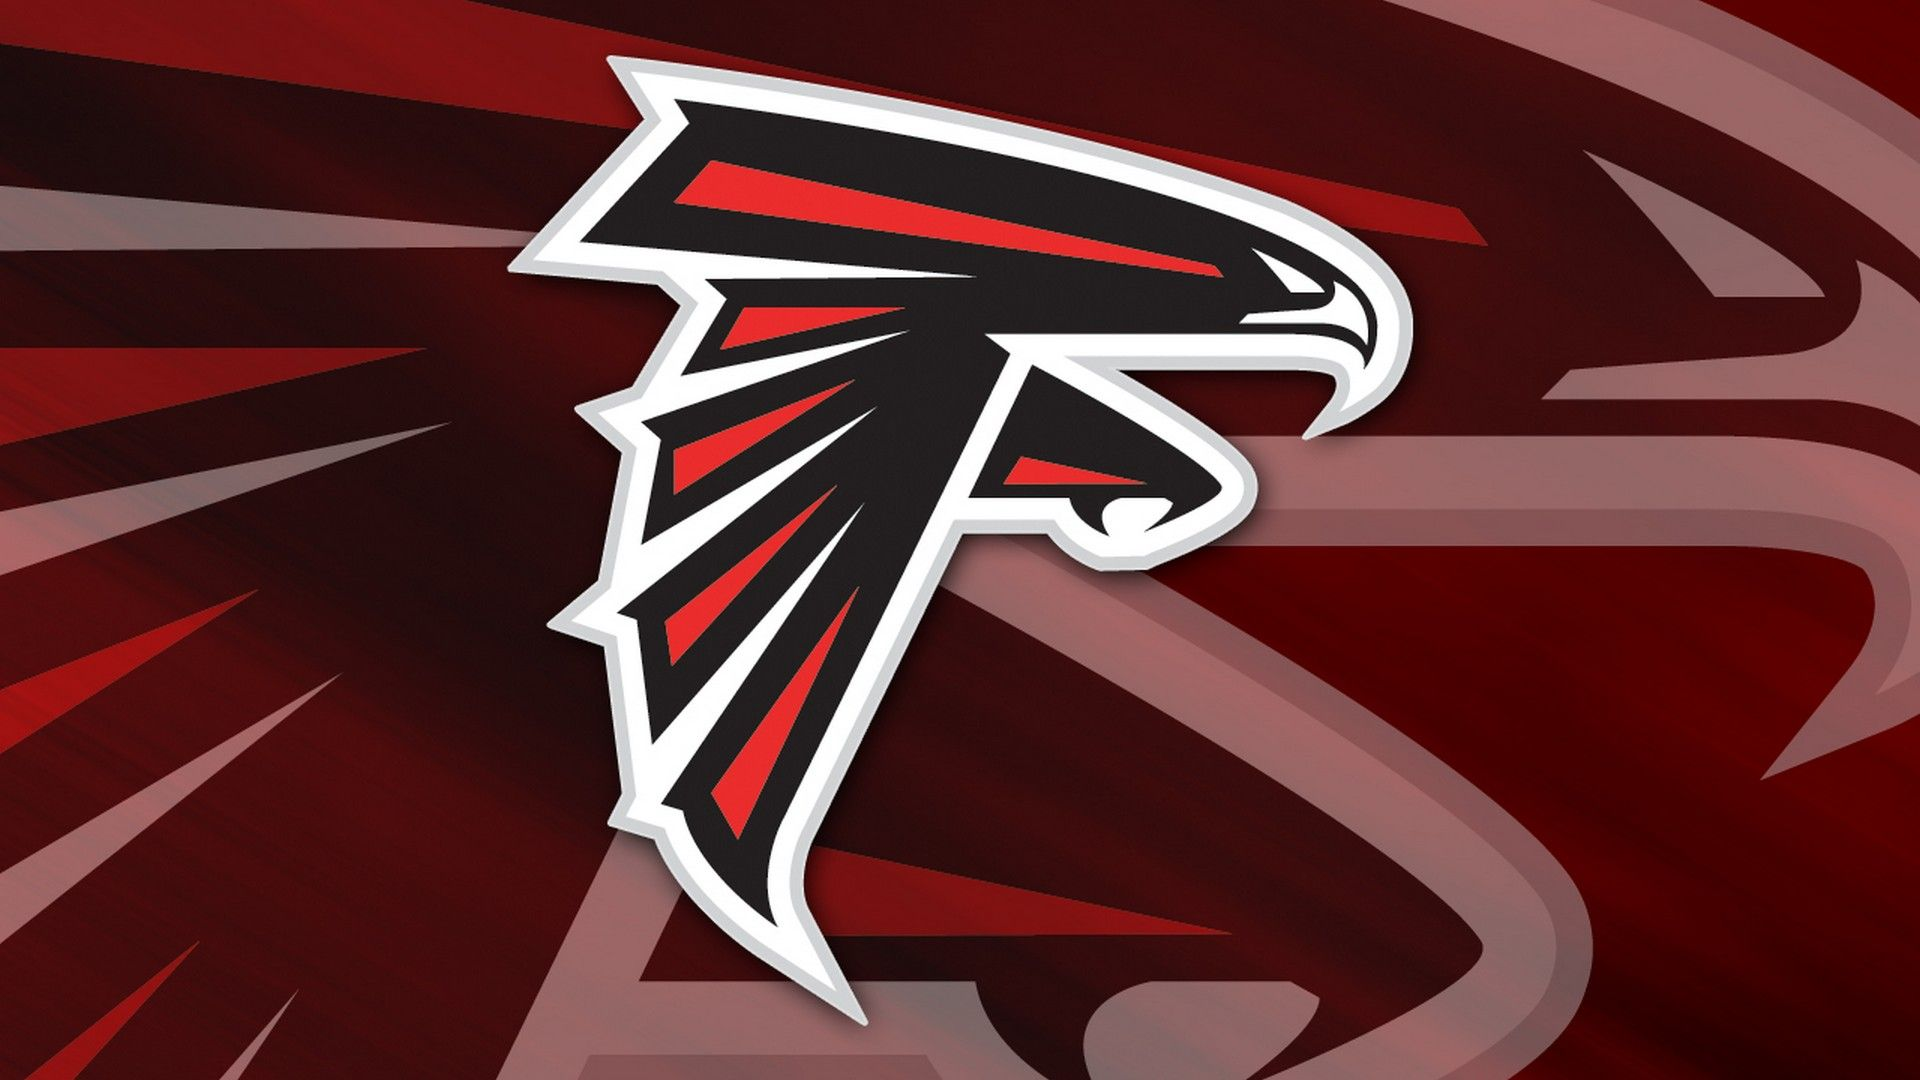 Falcons Iphone Wallpaper: Atlanta Falcons Wallpaper HD